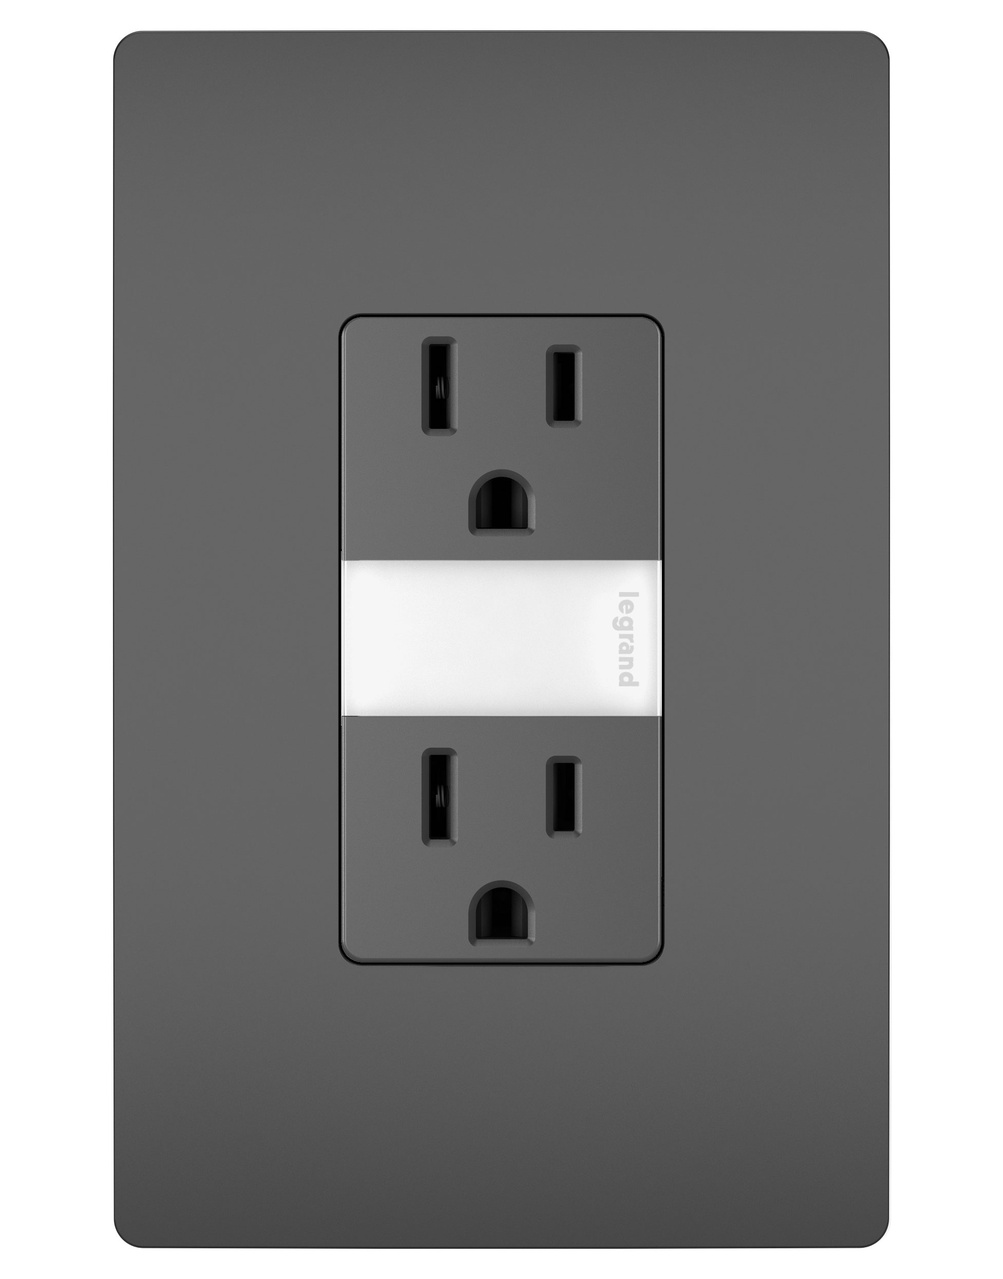 Night Light with Two 15A Tamper-Resistant Outlets, Black